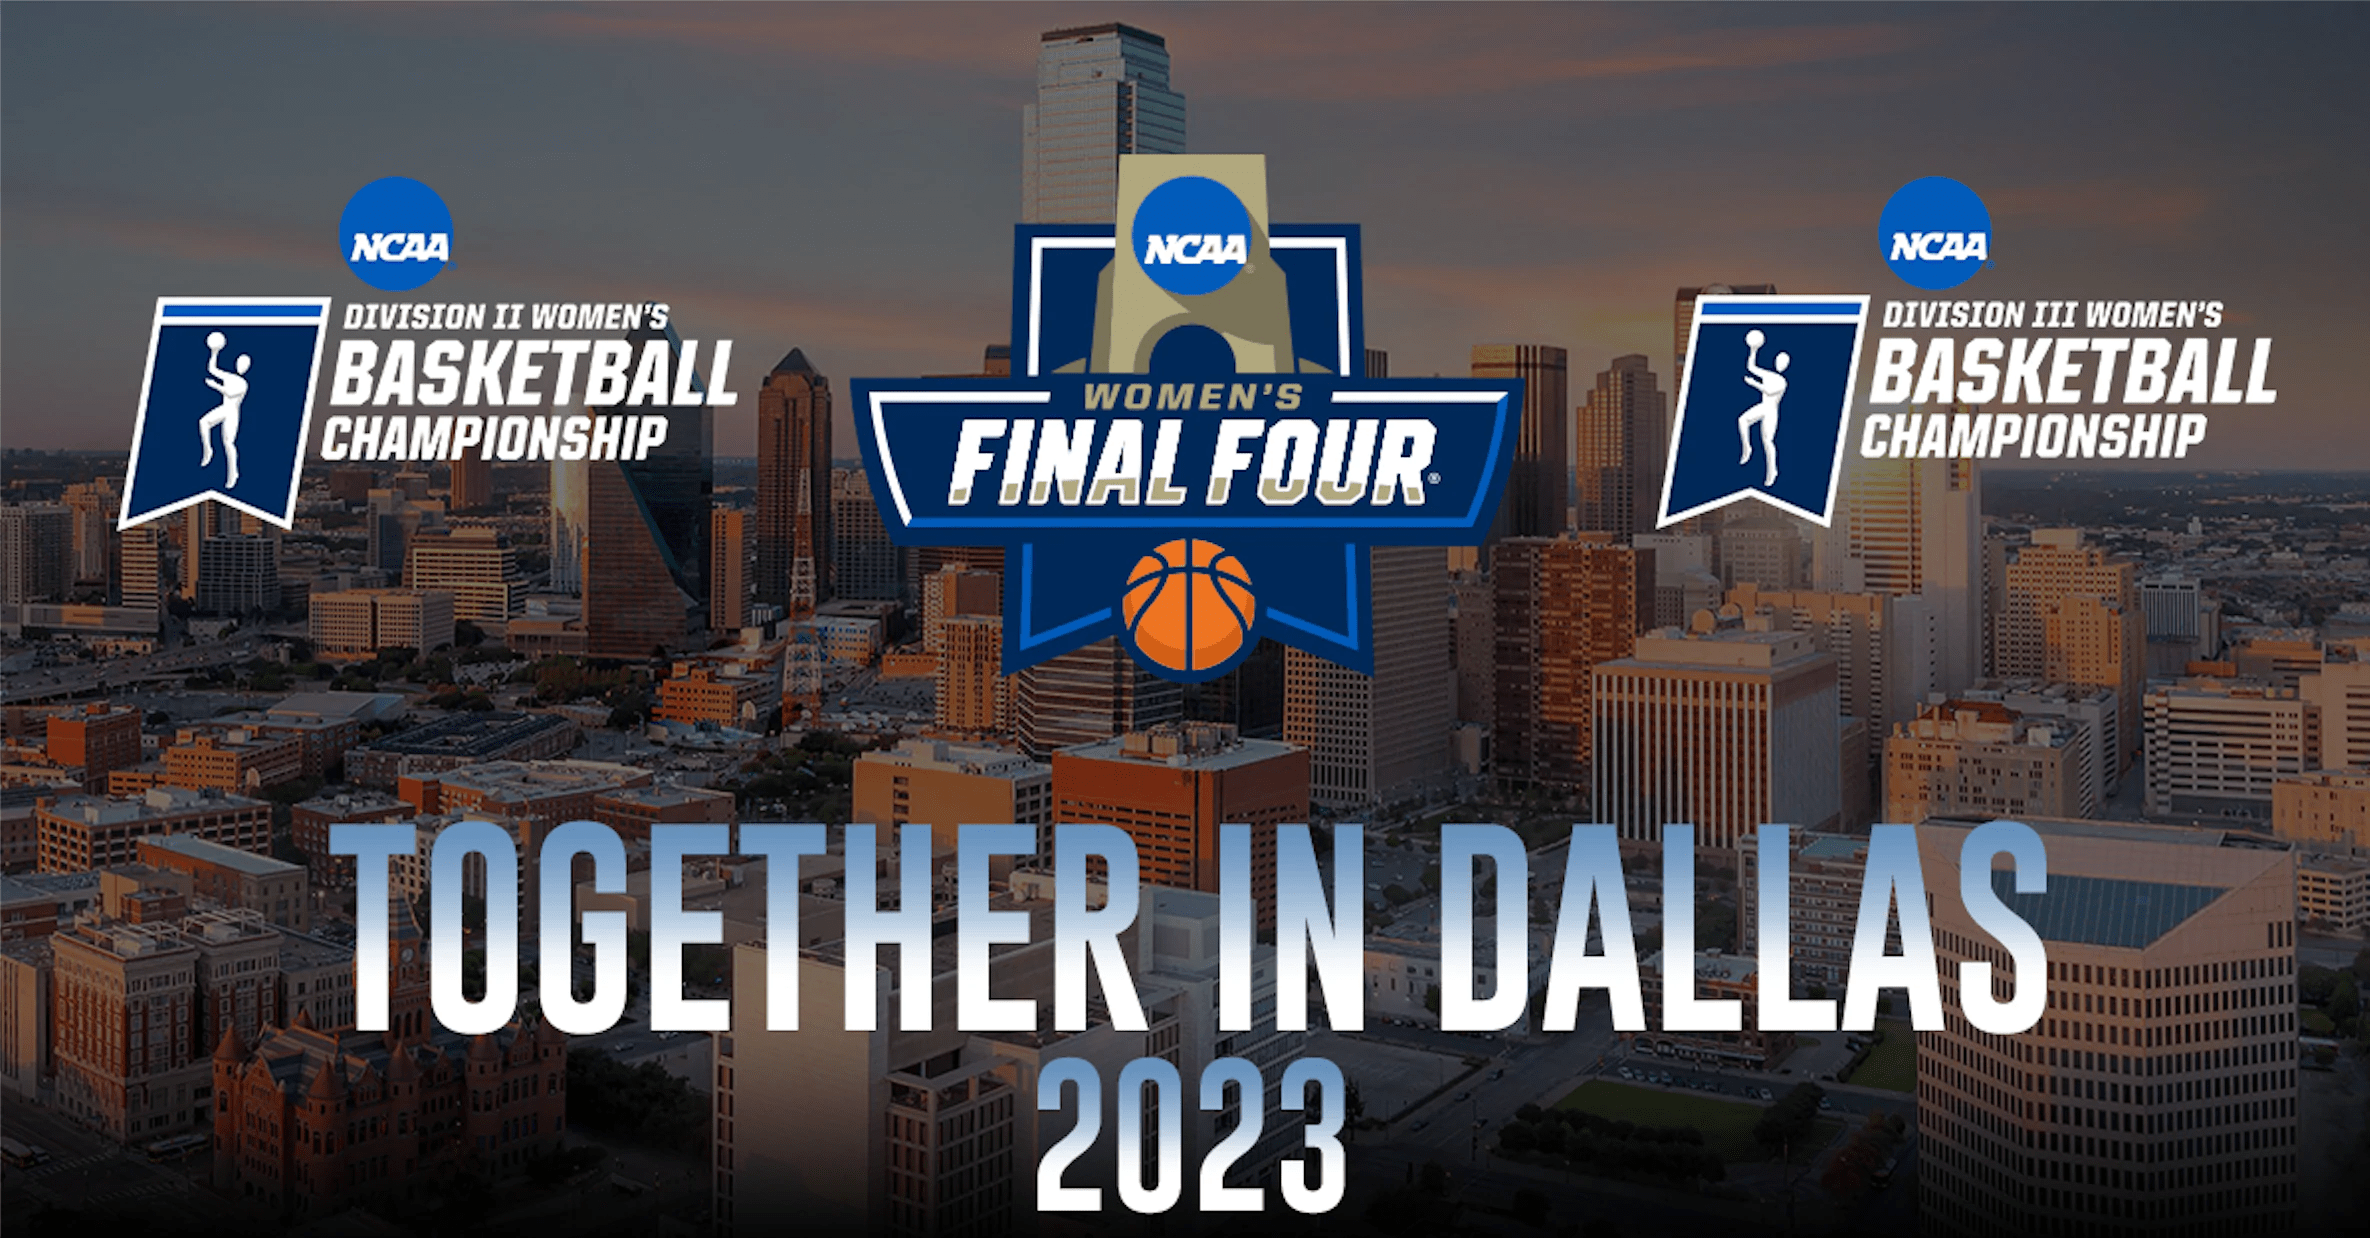 Championships for Divisions I, II and III to be combined events in Dallas for the 2023 NCAA Women's Final Four